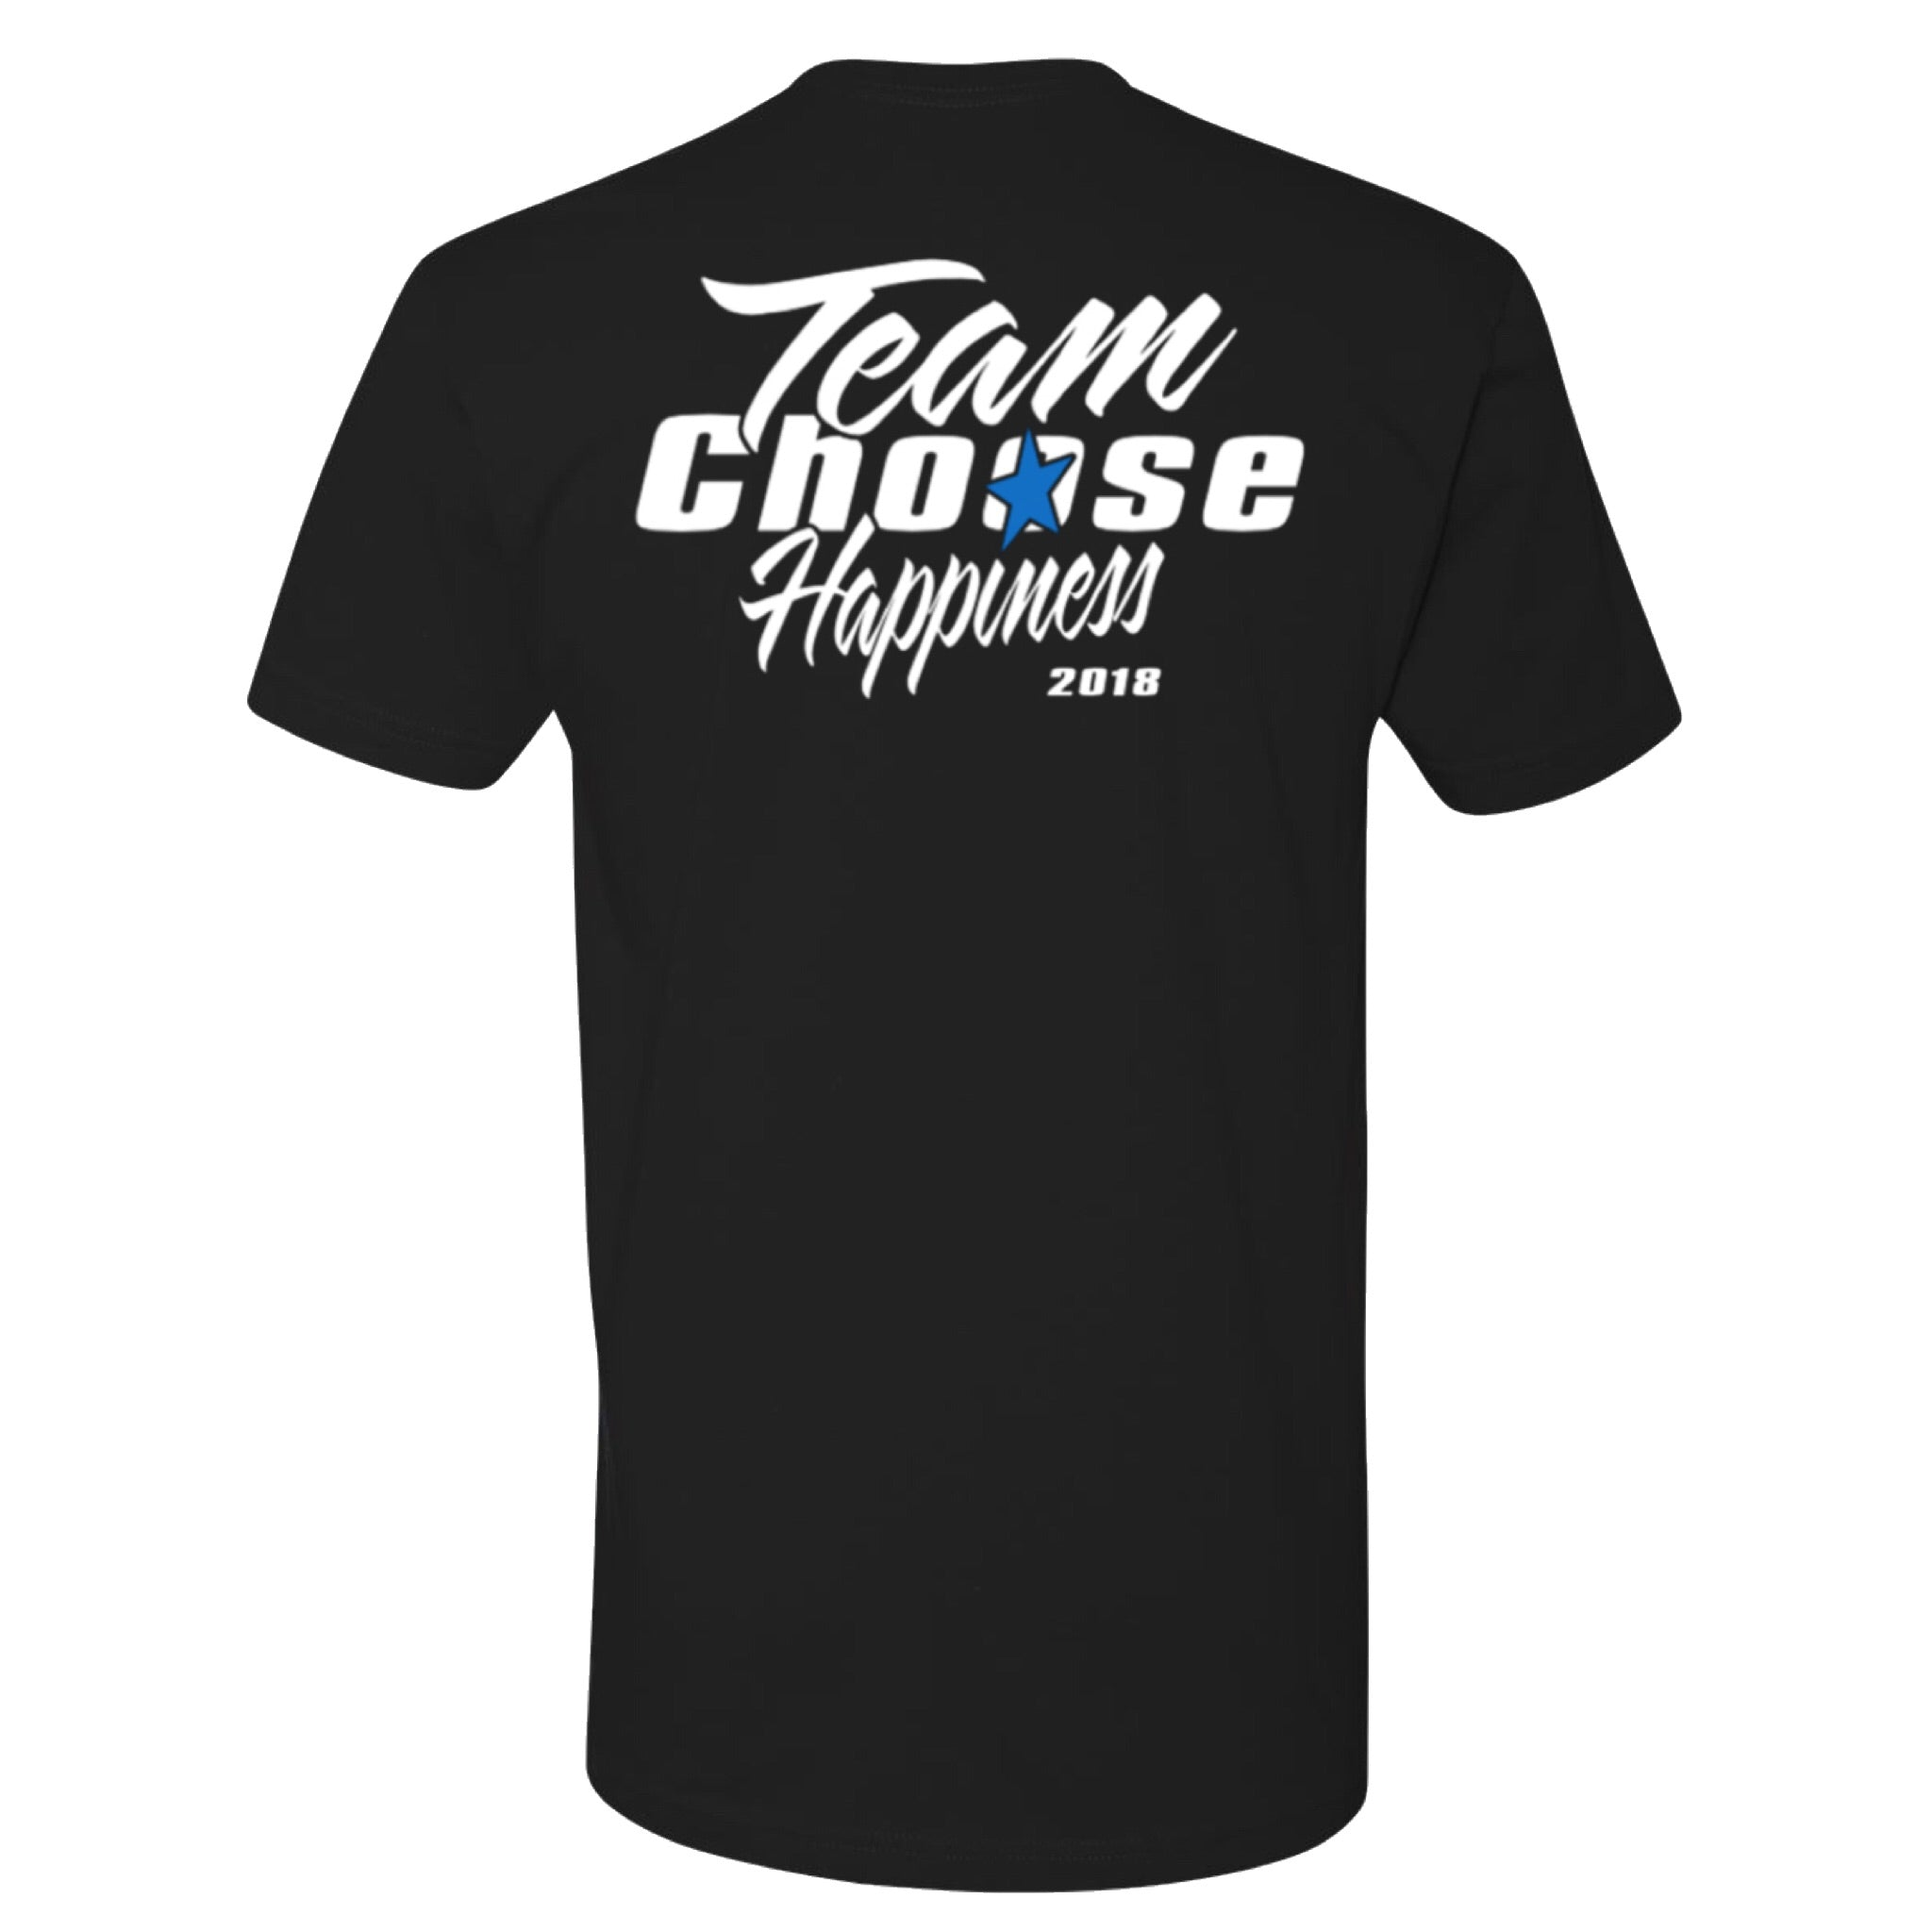 Team Choose Happiness